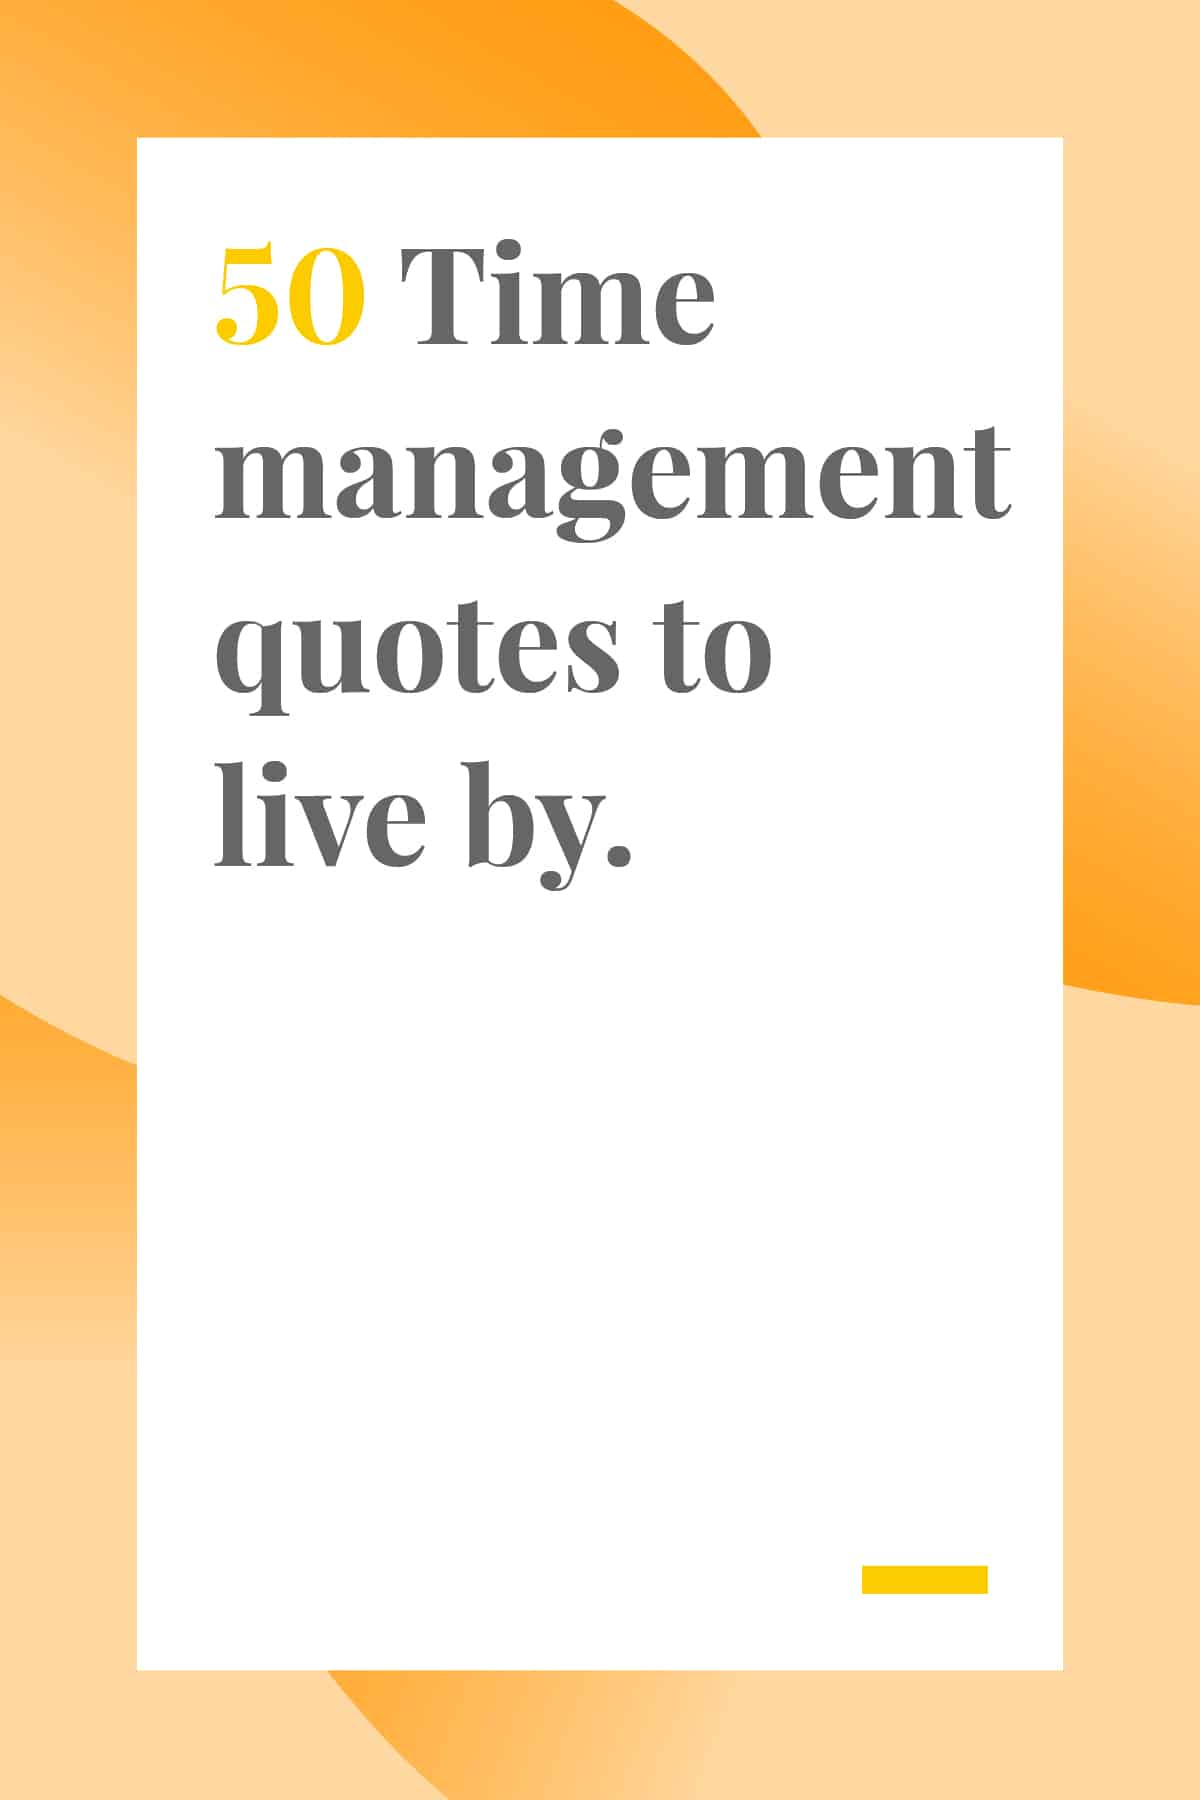 50 Time Management Quotes to Live By - Teamweek Blog